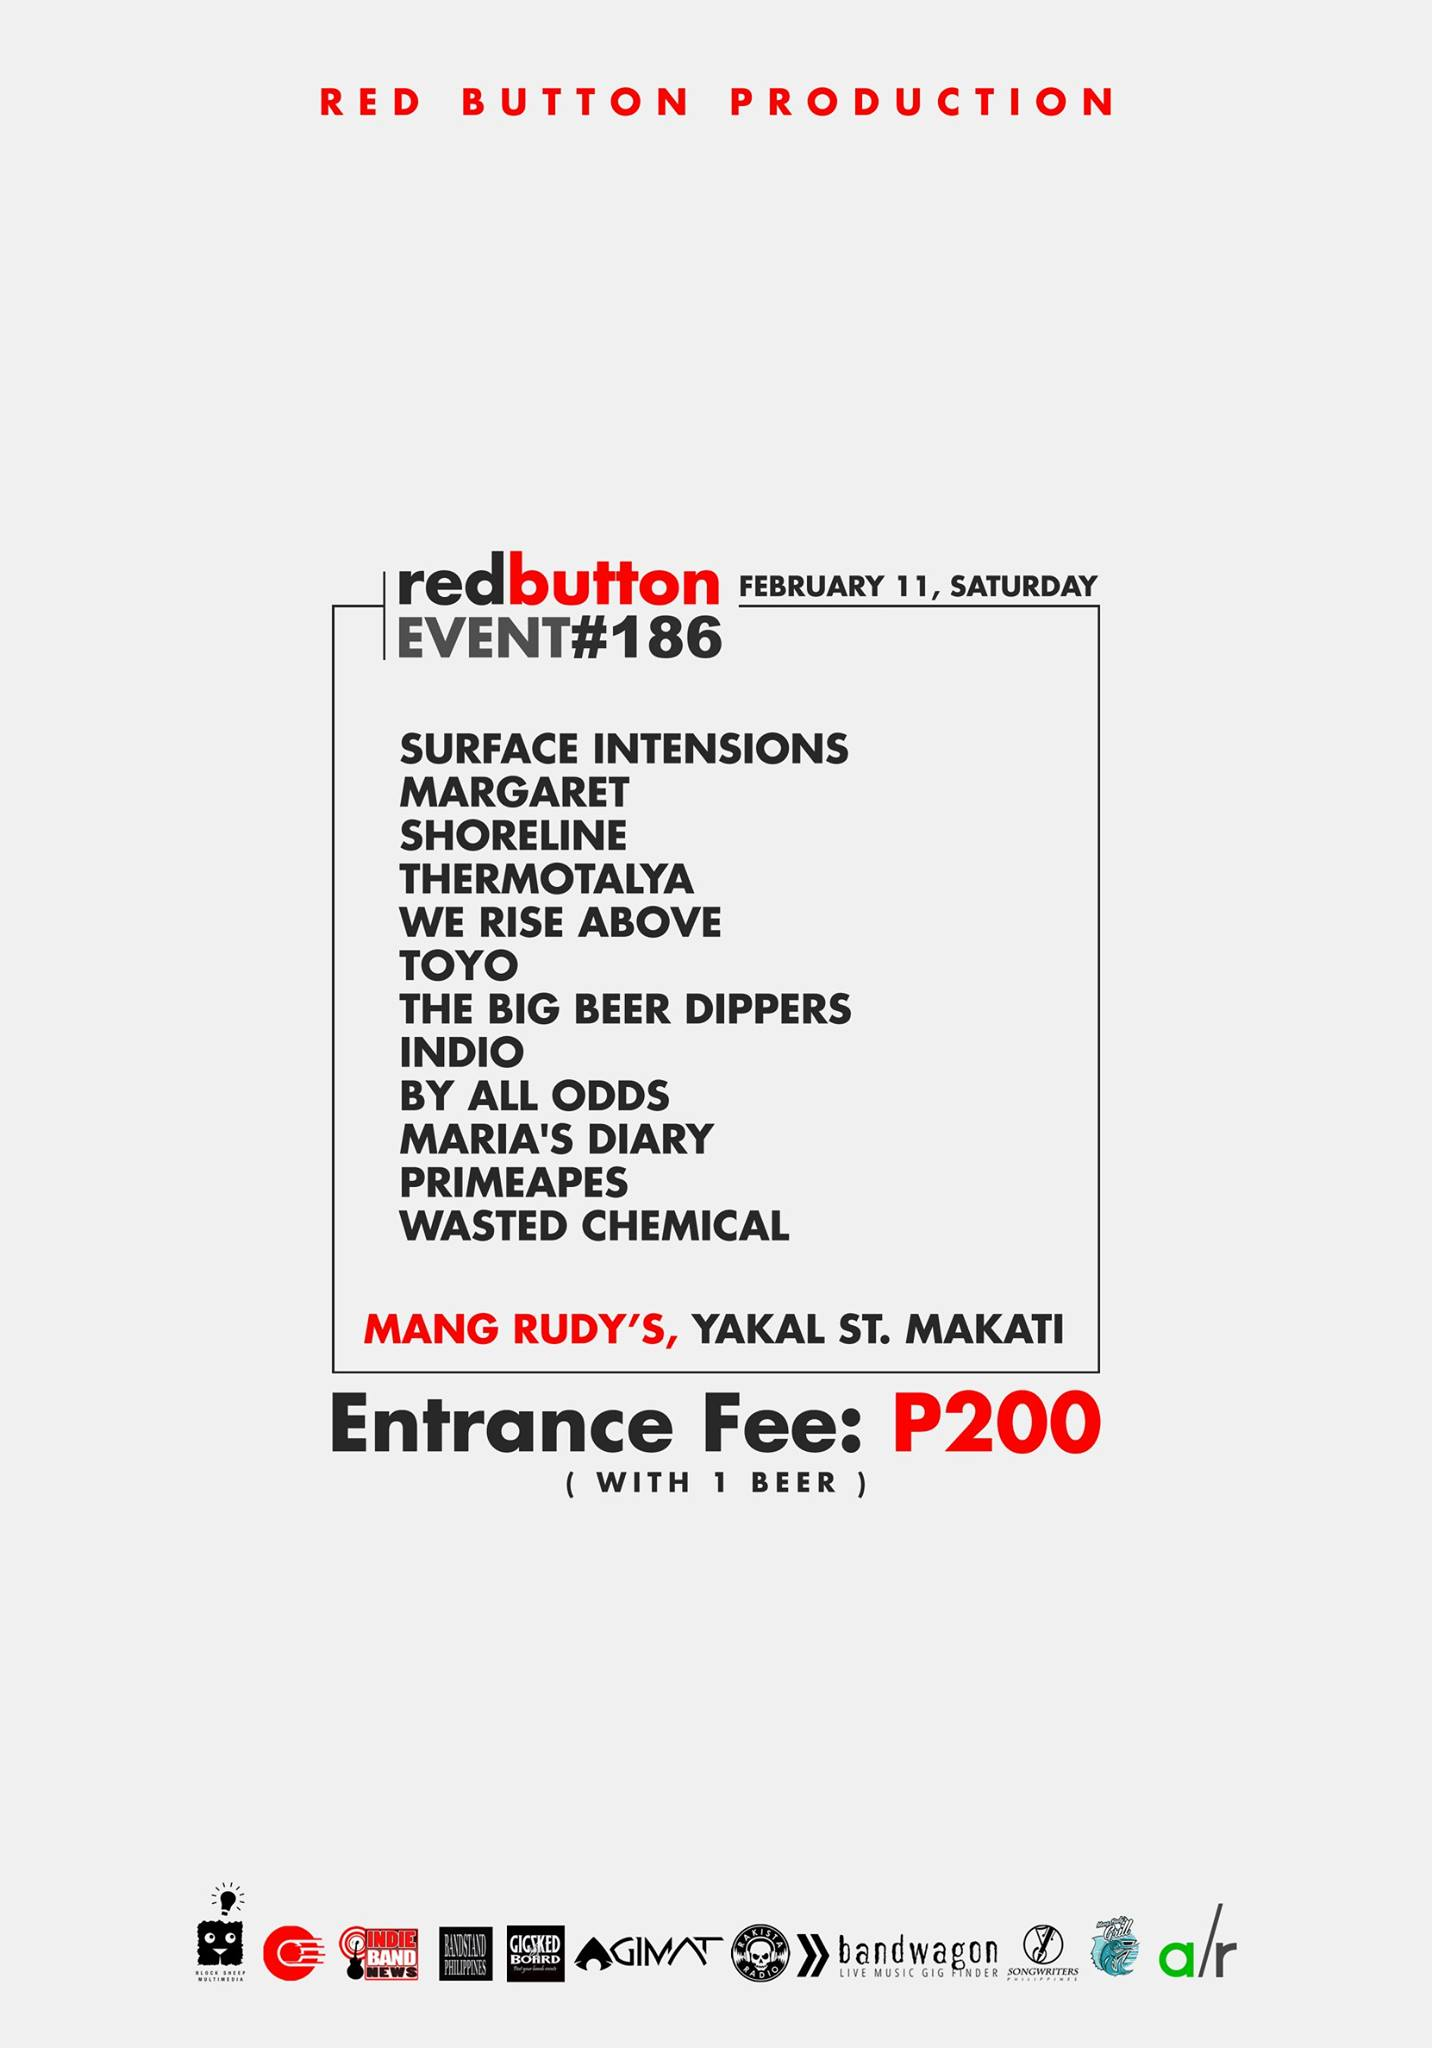 Red Button Production Like This Page · 7 hrs · Red Button Production present Red Button Event #186 February 11, Saturday at Mang Rudy's Tuna Grill And Papaitan, Yakal St., Makati Entrance Fee: P200 with 1 Drink performances by: Surface Intensions Margaret Shoreline Thermotalya We Rise Above Toyo The Big Beer Dippers Indio By All Odds Maria's Diary PrimeApes Wasted Chemical Event Link: https://www.facebook.com/events/1773841186270225/ Media Partners: Block Sheep Multimedia Indie Band News Bandstand Philippines Gig Sked Board Agimat: Sining at Kulturang Pinoy Rakista Radio! Bandwagon Songwriters Philippines Adobo Radio — at Mang Rudy's Tuna Grill And Papaitan.